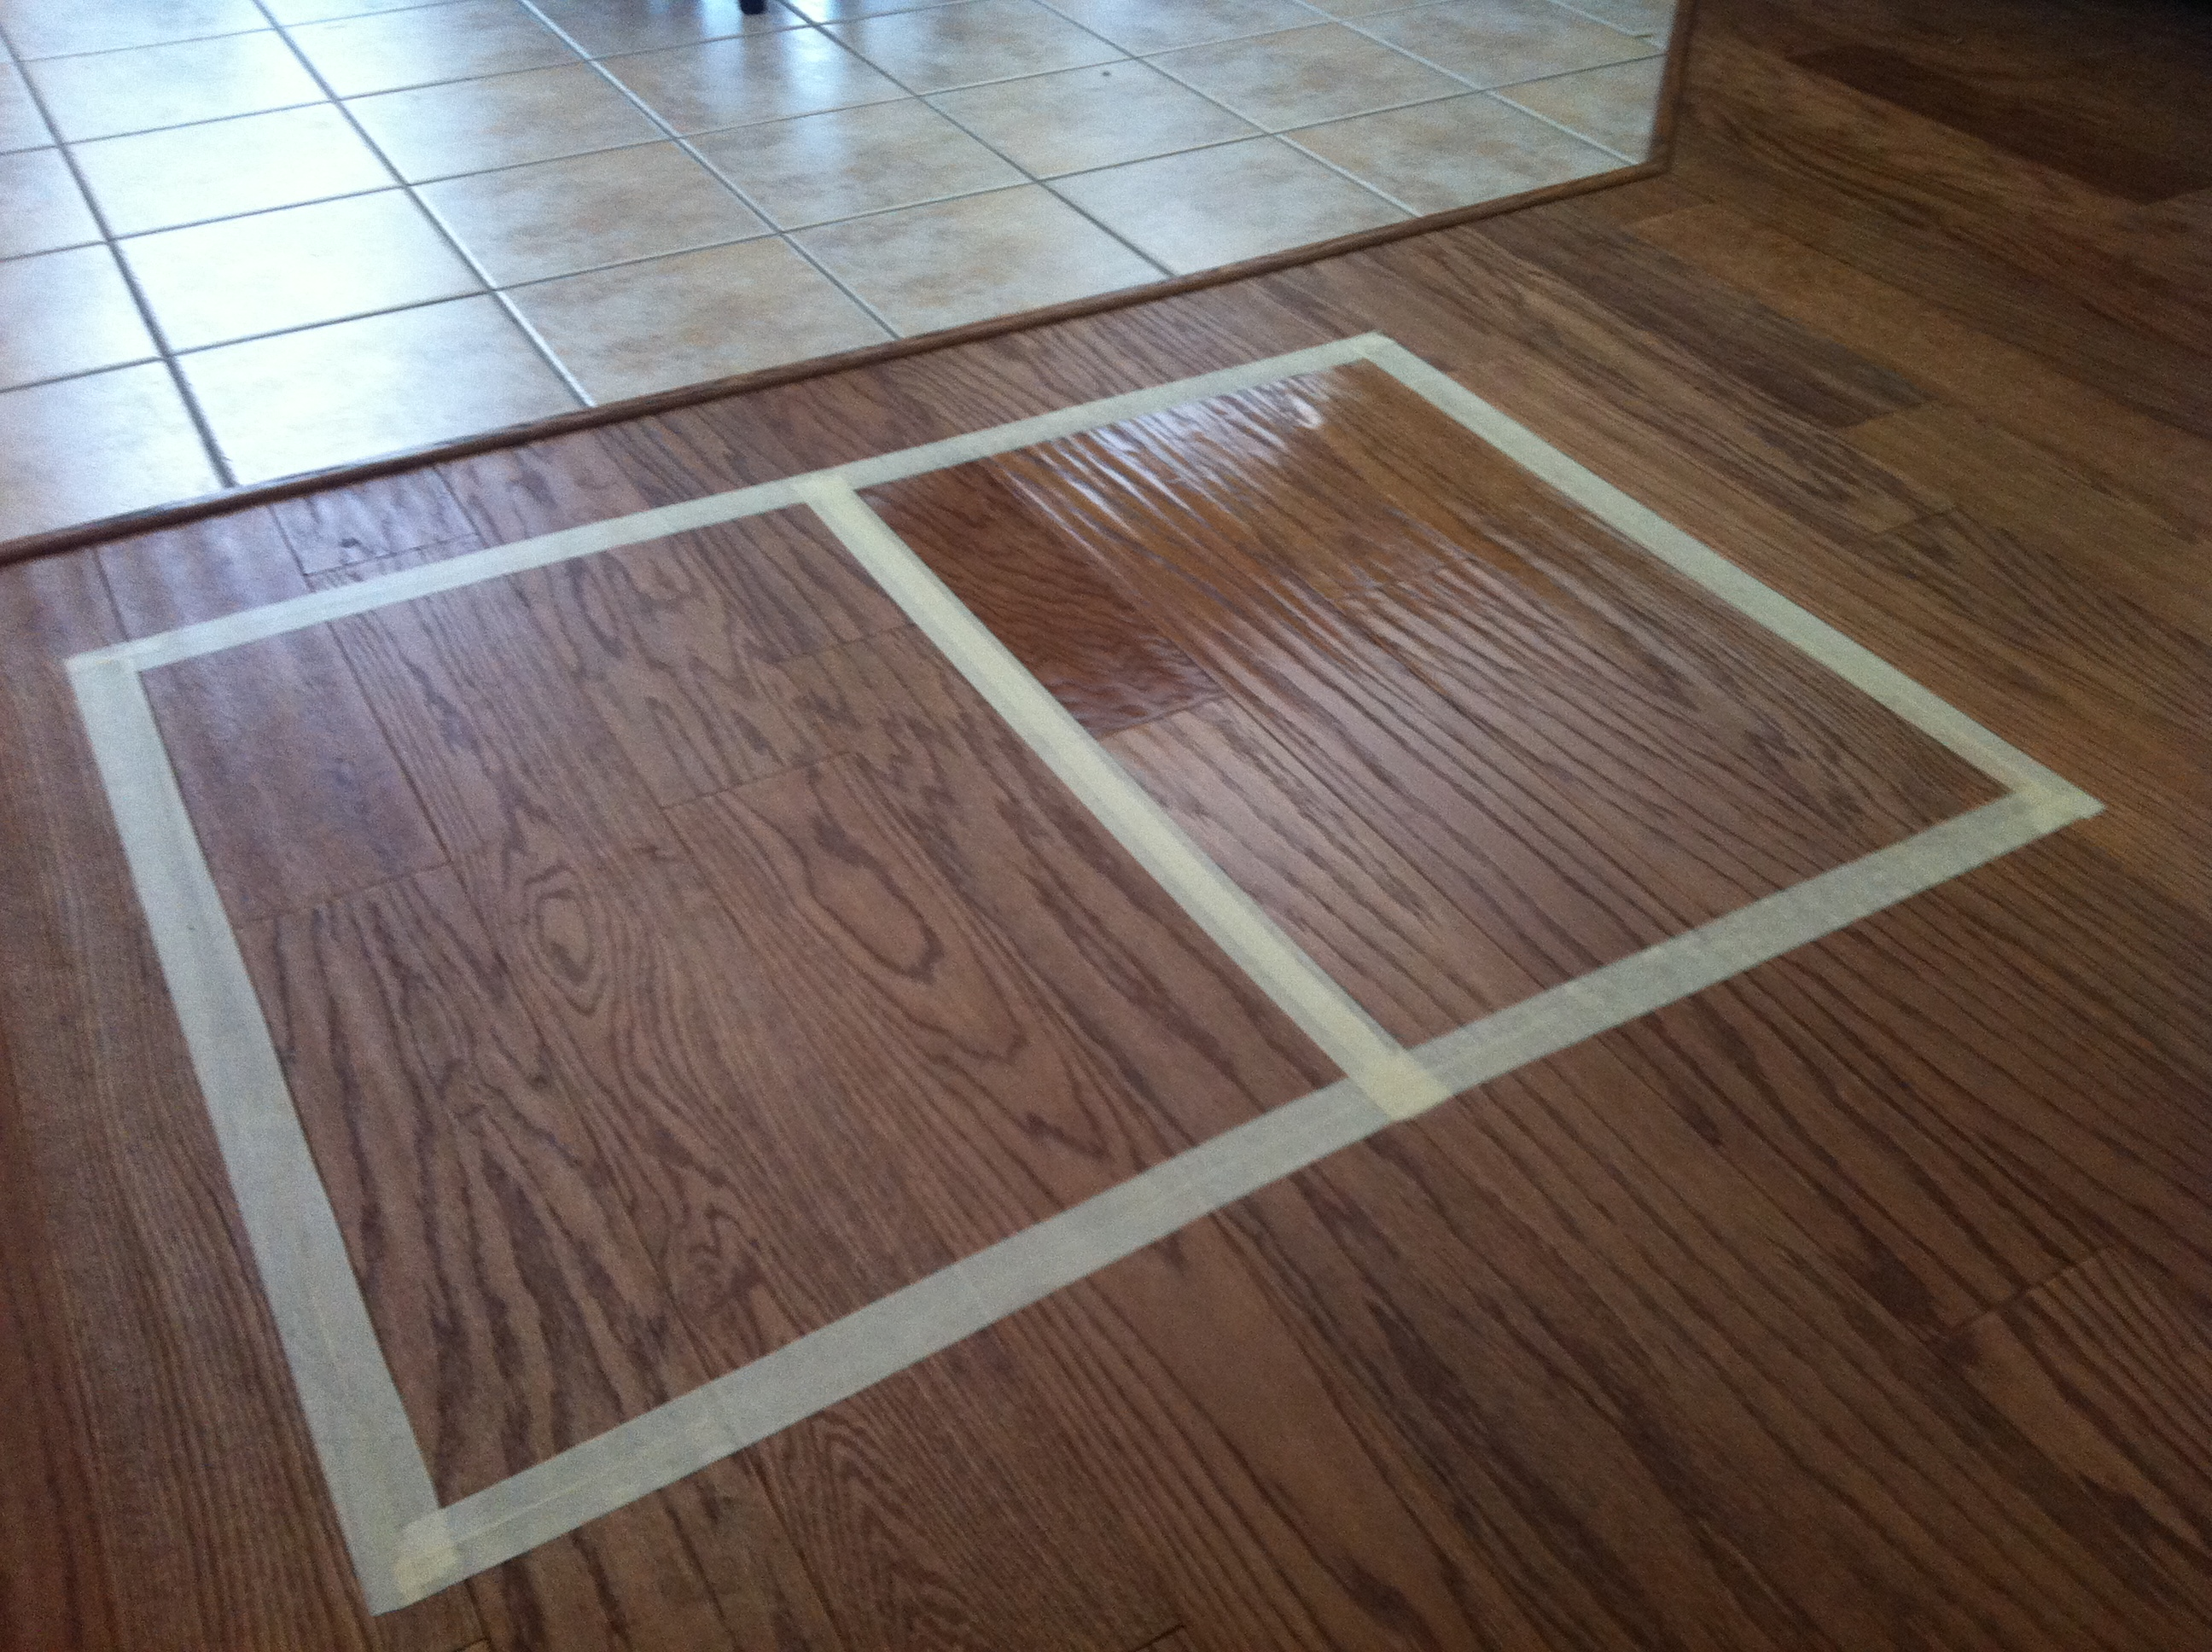 How To Remove Rejuvenate From Wood Floors Walesfootprint Org